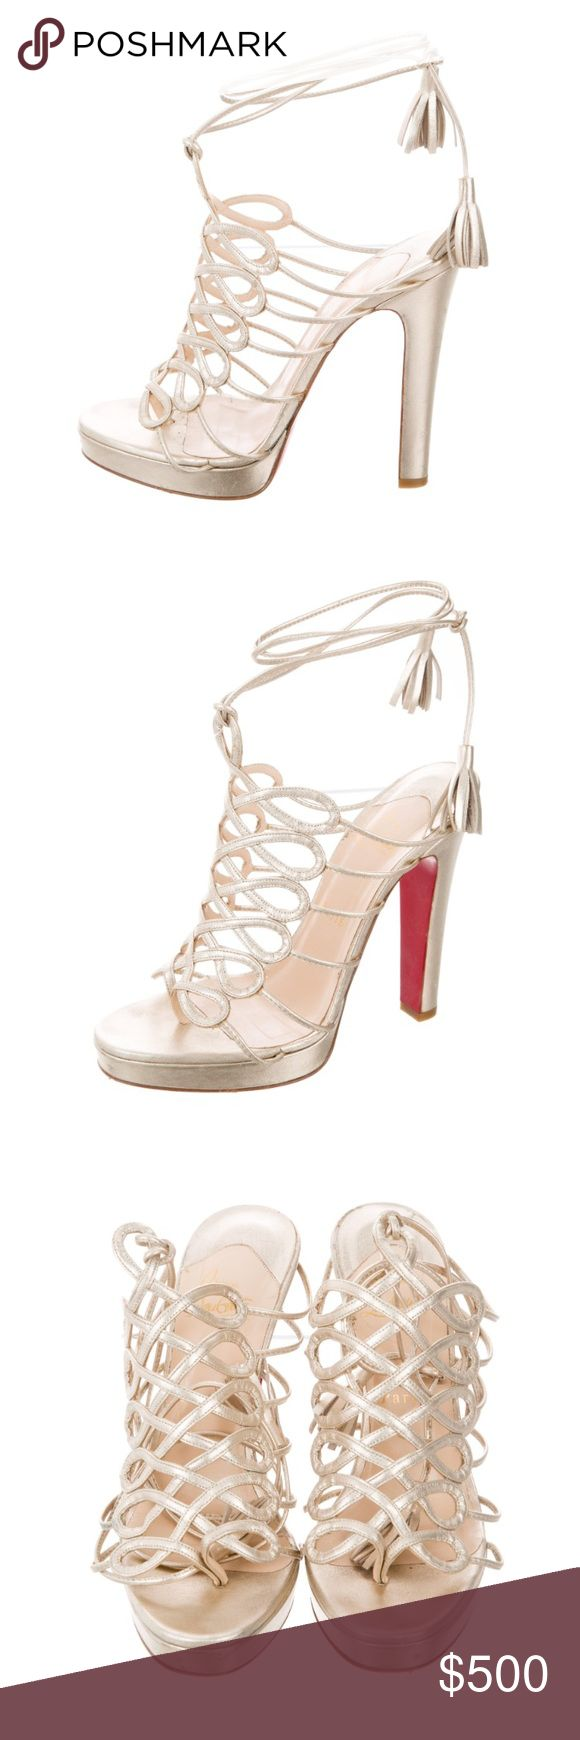 """CHRISTIAN LOUBOUTIN METALLIC CAGE SANDALS Metallic gold leather Christian Louboutin cage platform sandals with tonal stitching throughout, covered heels and tie closures at ankles. Designer Fit: This designer typically runs a half size or full size small. Heels: 5.25"""" Platforms: 1"""" Christian Louboutin Shoes Sandals #christianlouboutingold"""